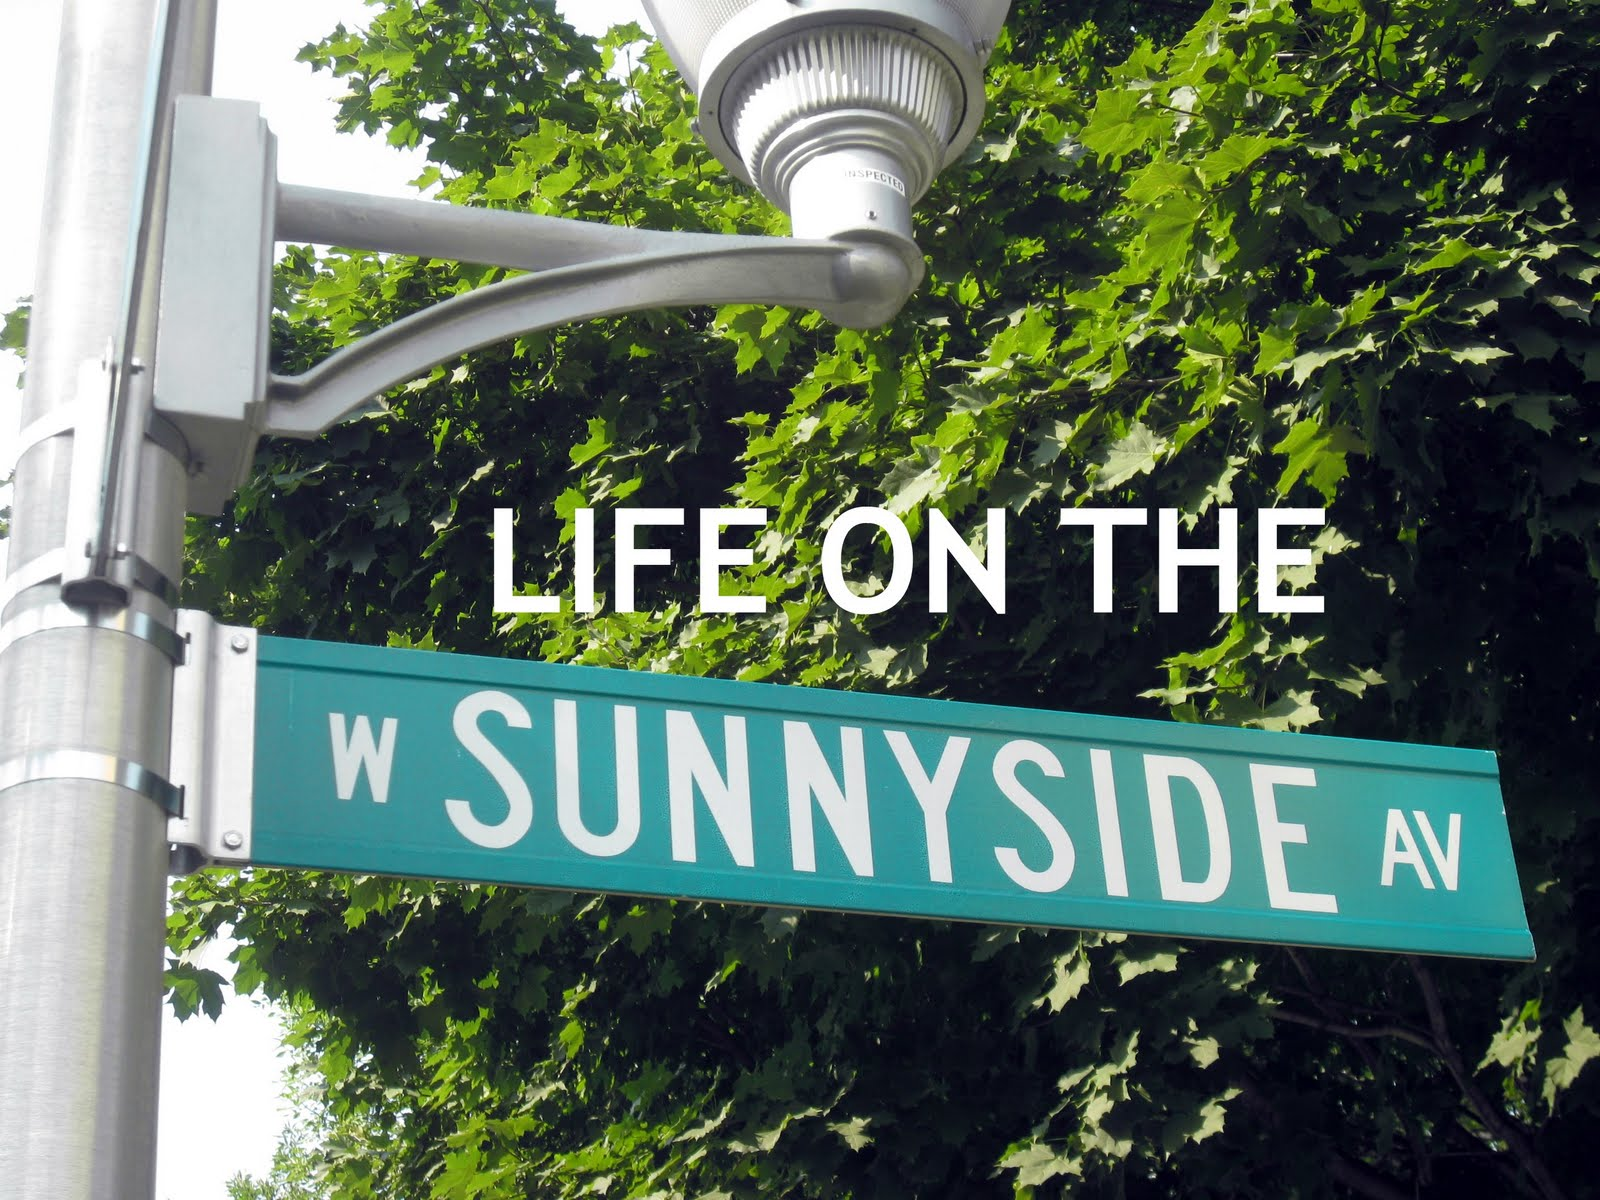 Life on the Sunnyside.